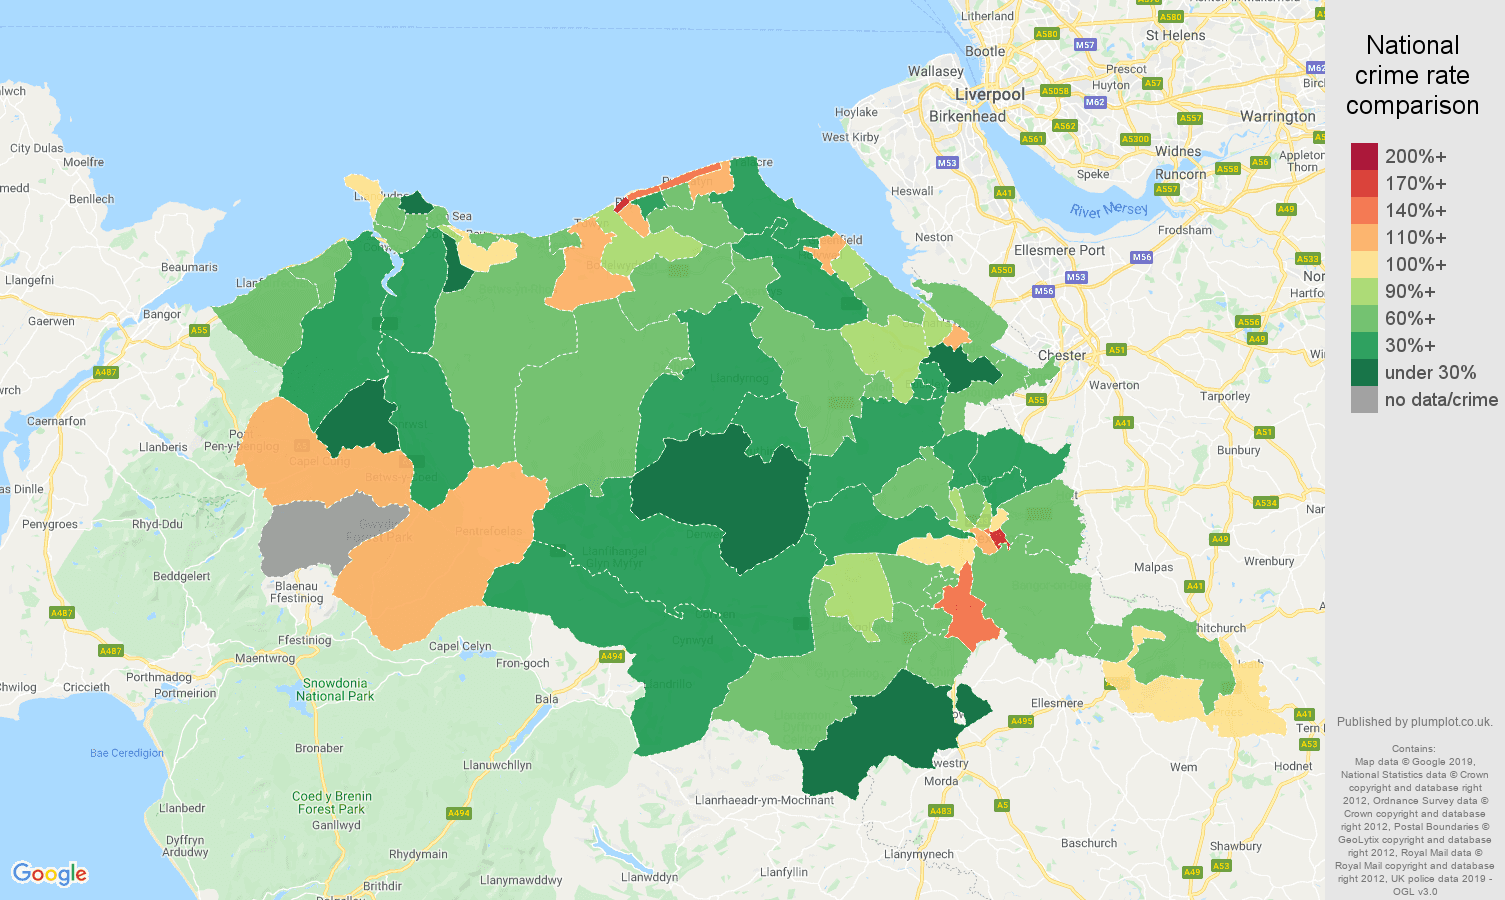 Clwyd other theft crime rate comparison map